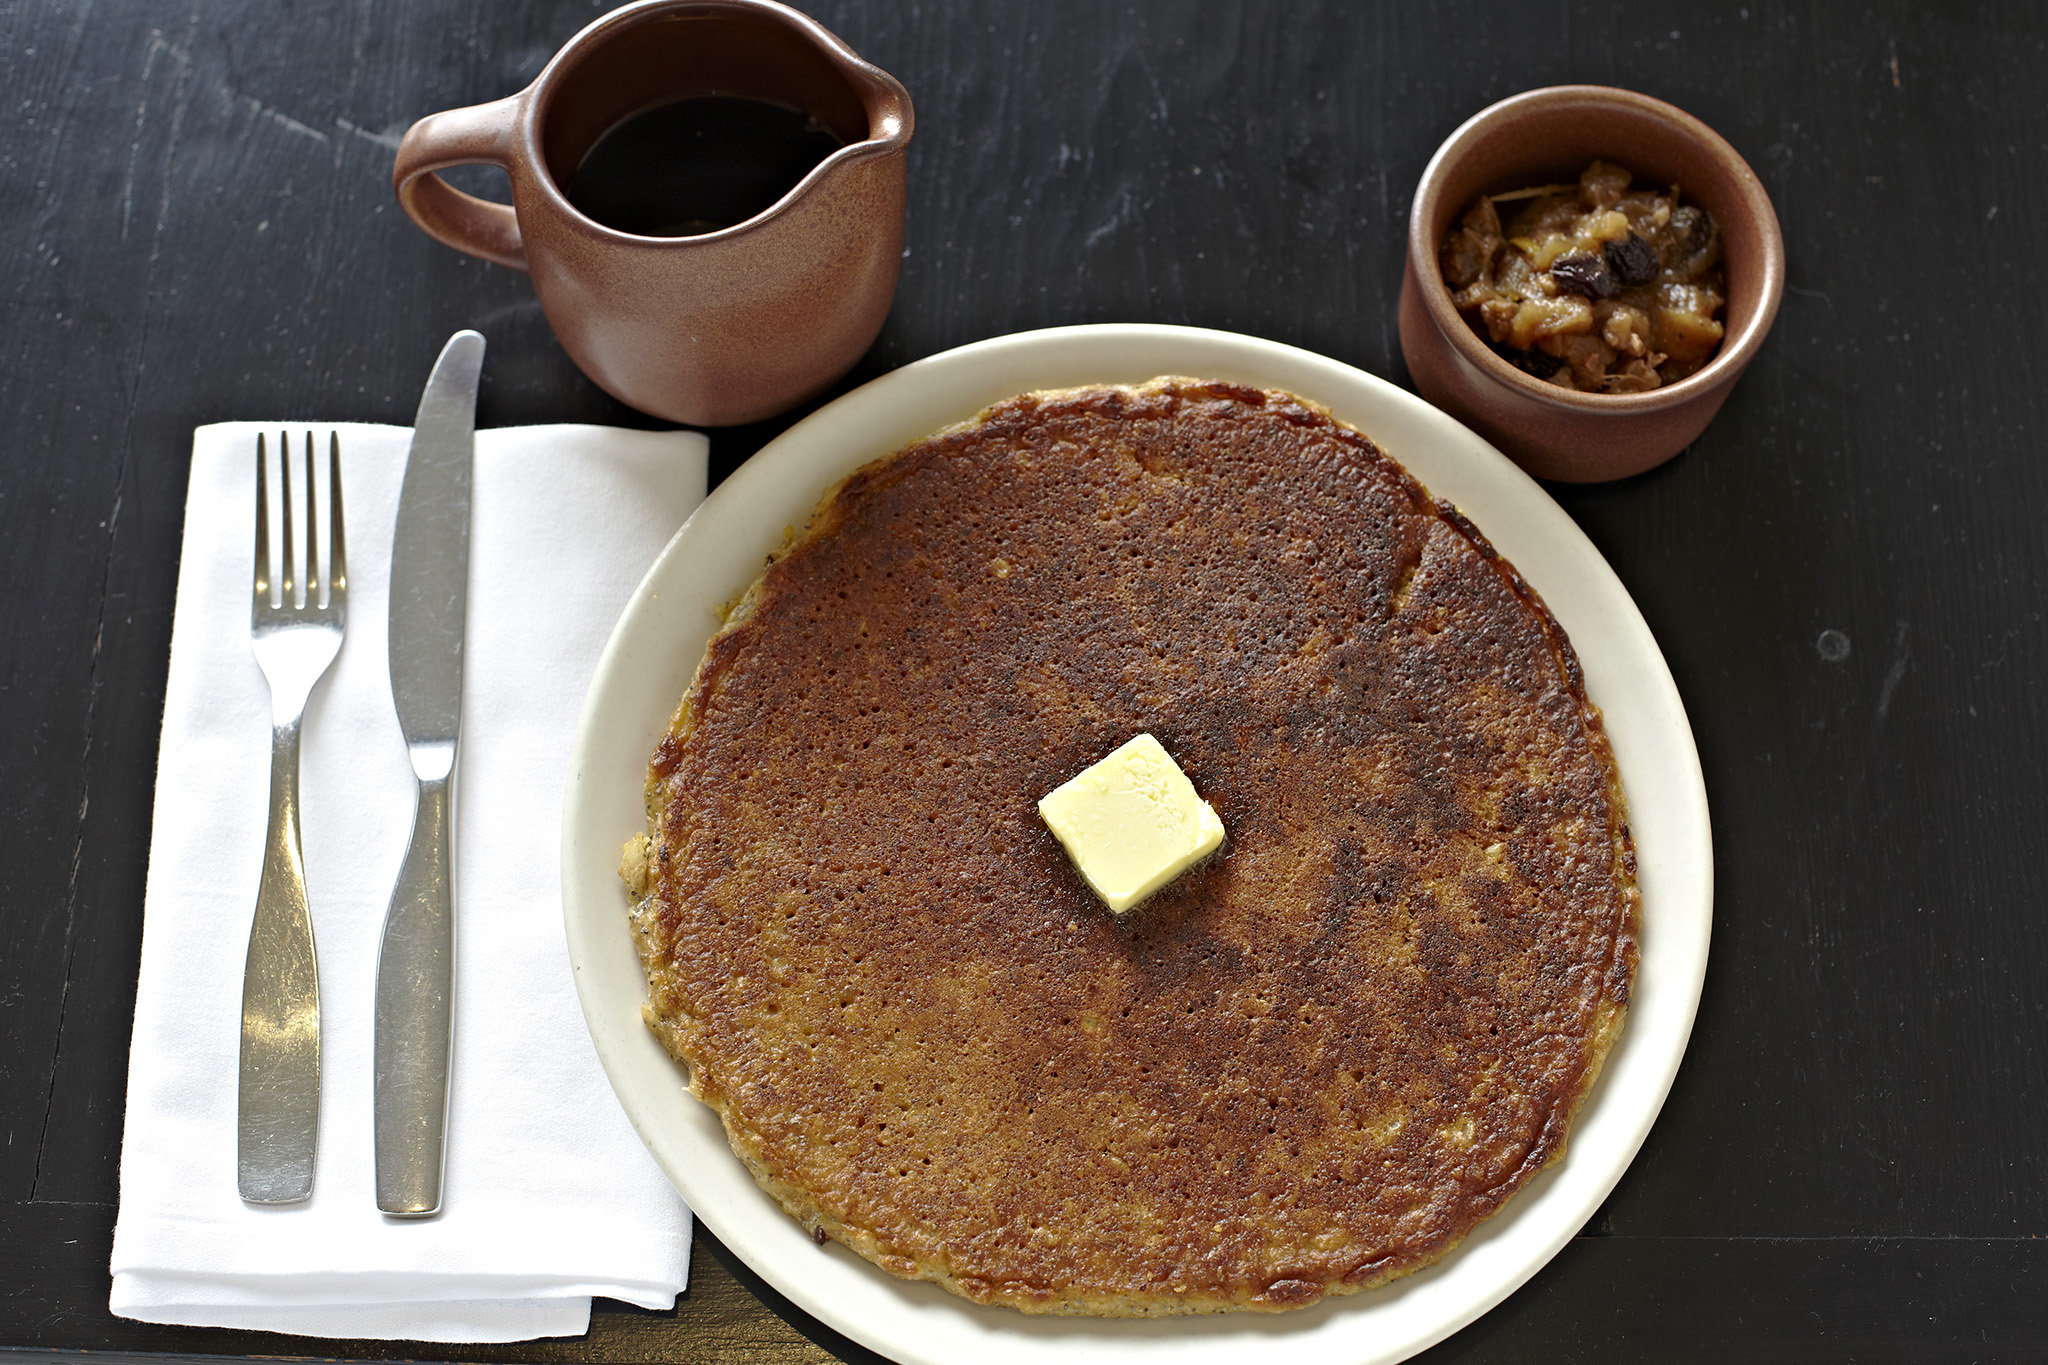 Best brunch restaurants for pancakes